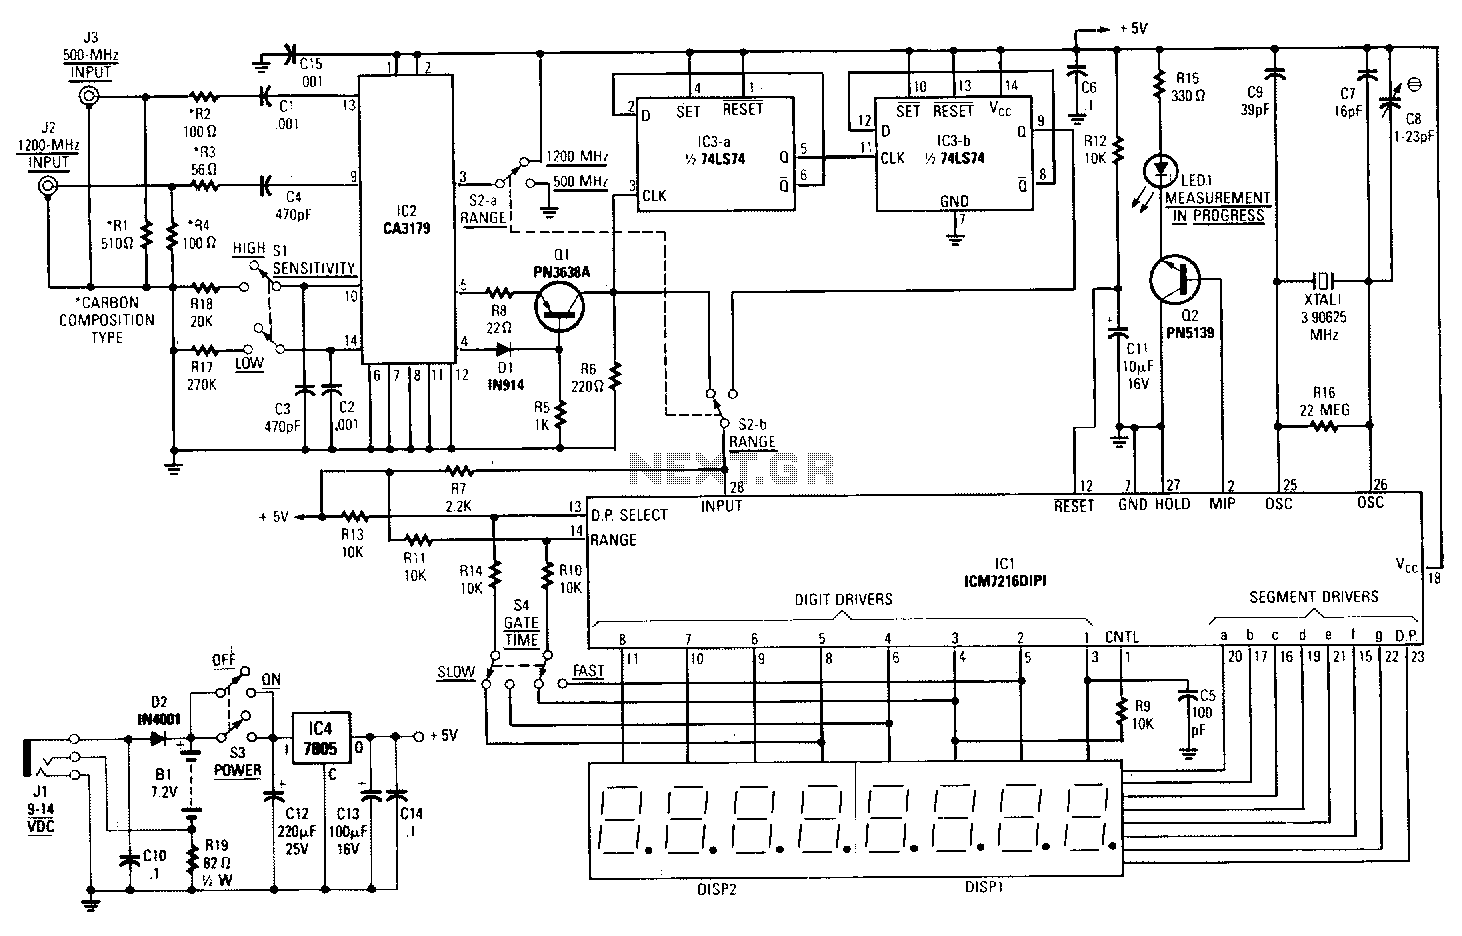 Lighting Circuit Page 2 Light Laser Led Circuits As All Wireless Control System Ultrasonic Lampbrightness Controller 12ghz Frequency Counter